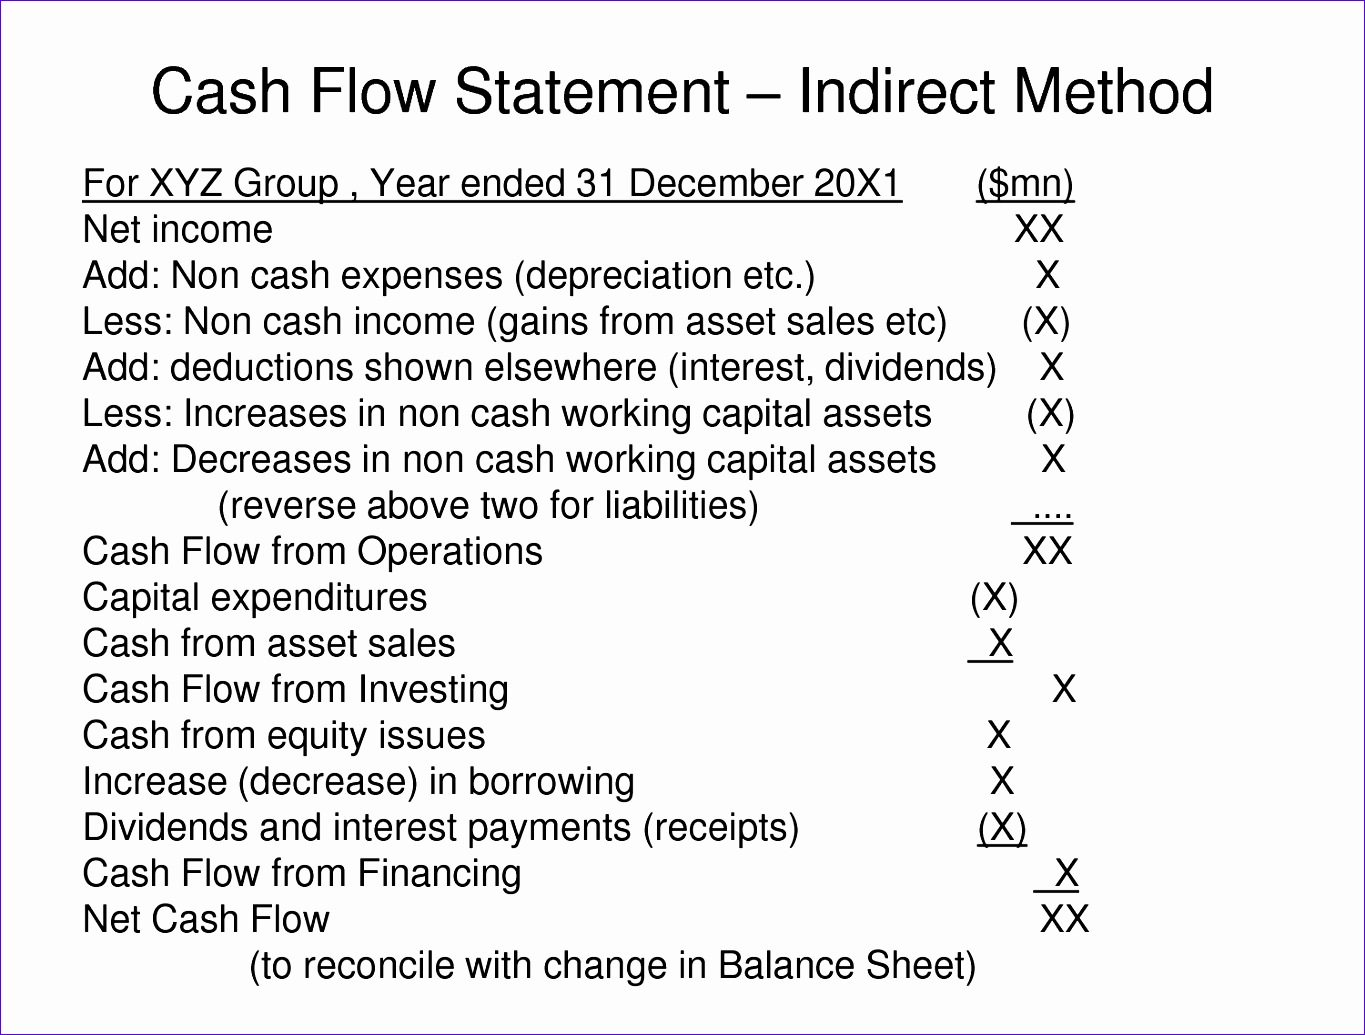 statement of cash flow indirect method 7f04jfd6